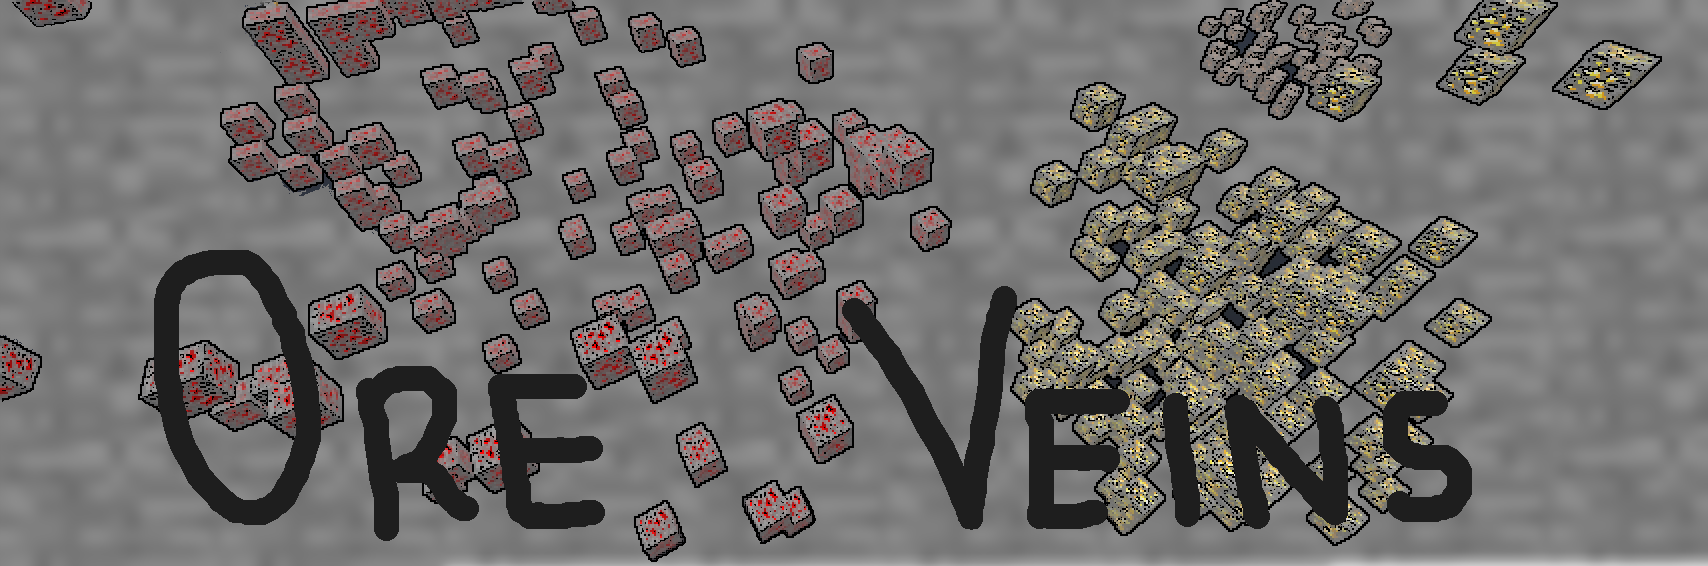 Ore Veins Banner Image